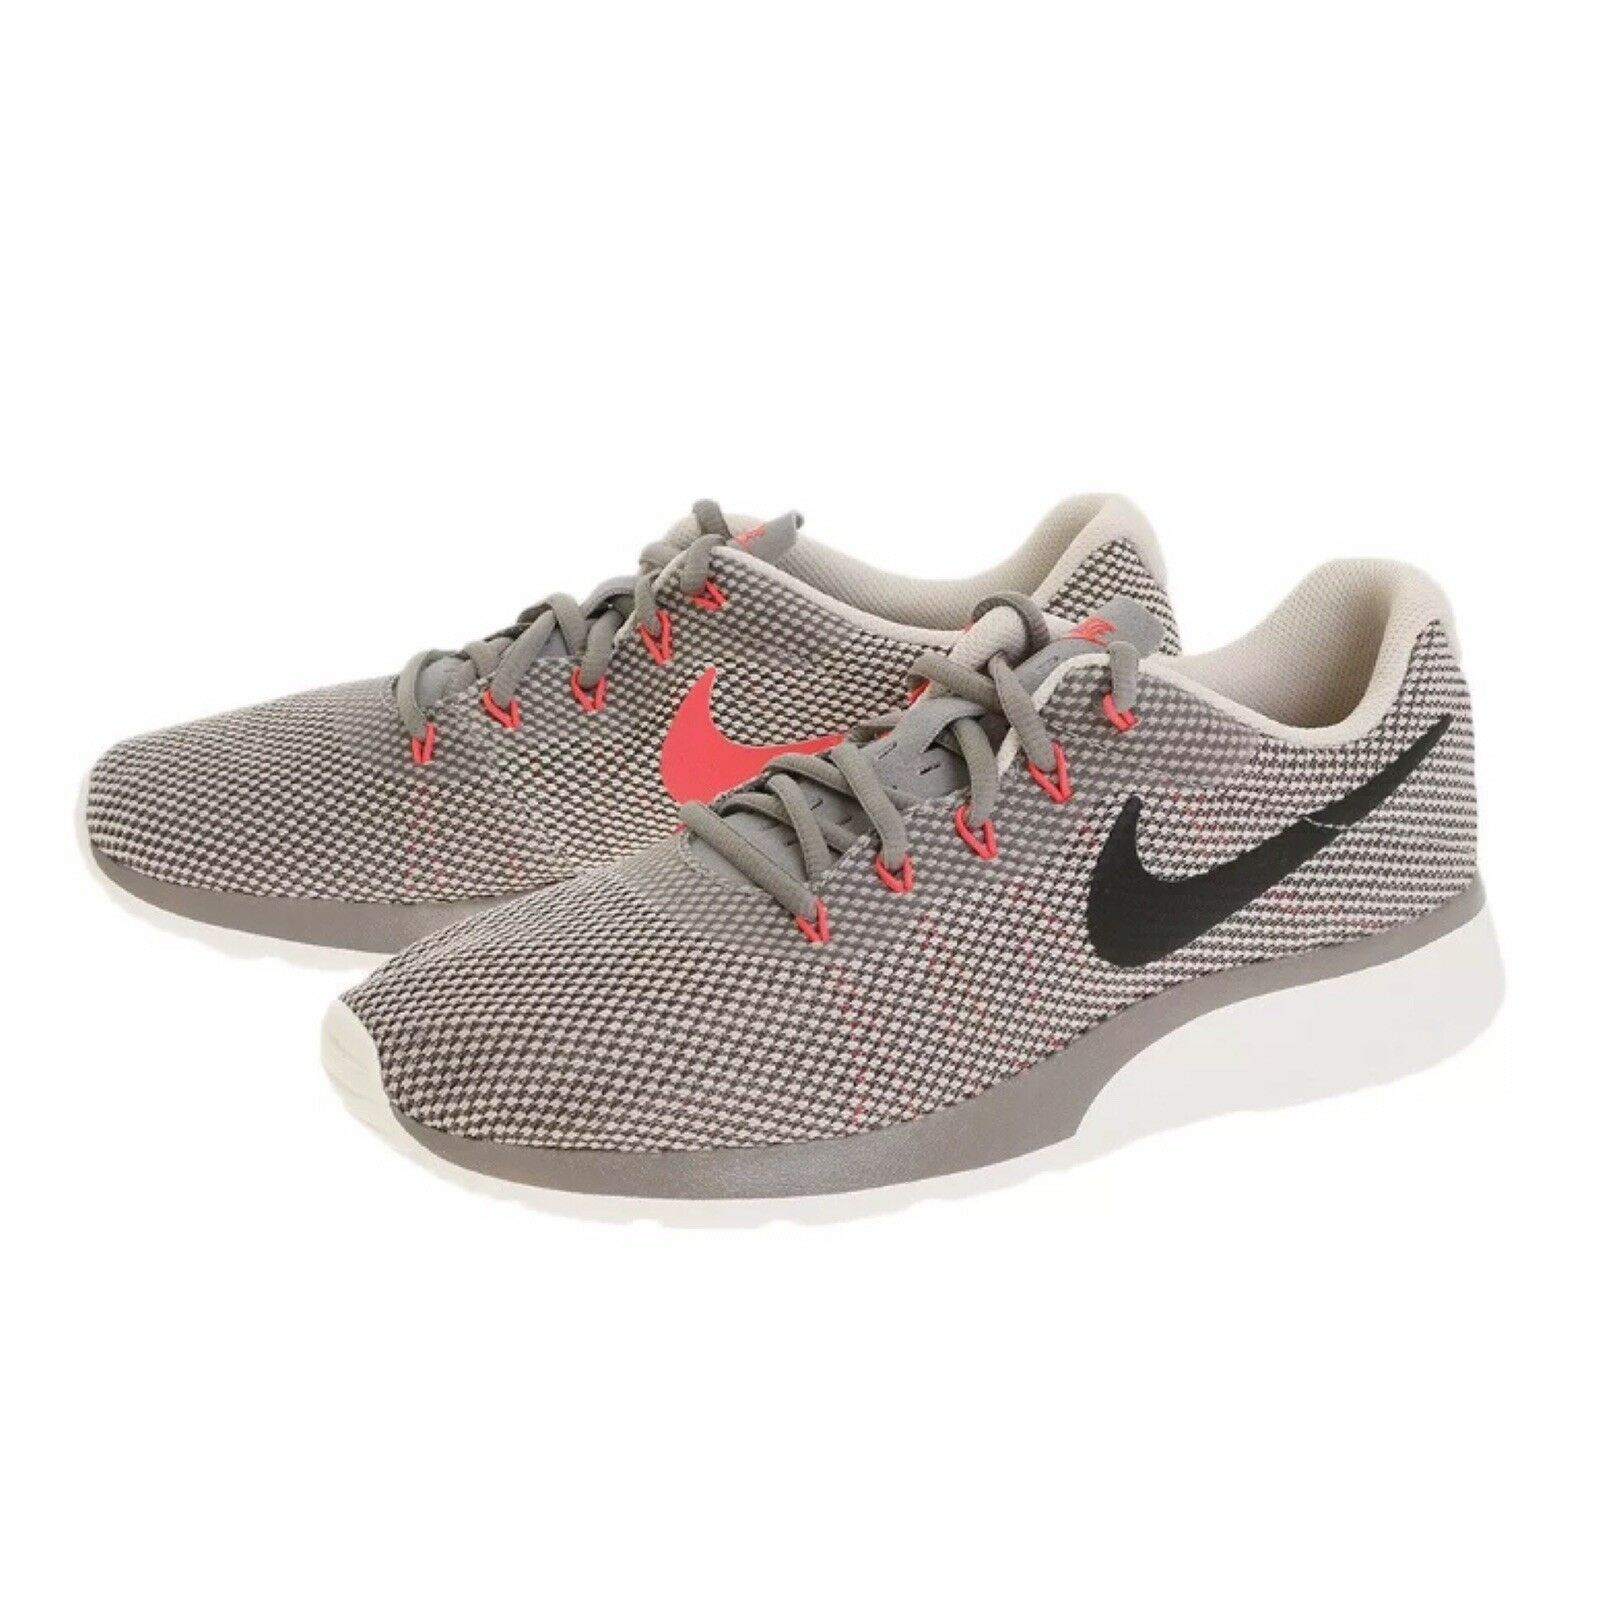 NWOB Men's Nike TANJUN RACER  Price reduction Running  Shoe Comfortable